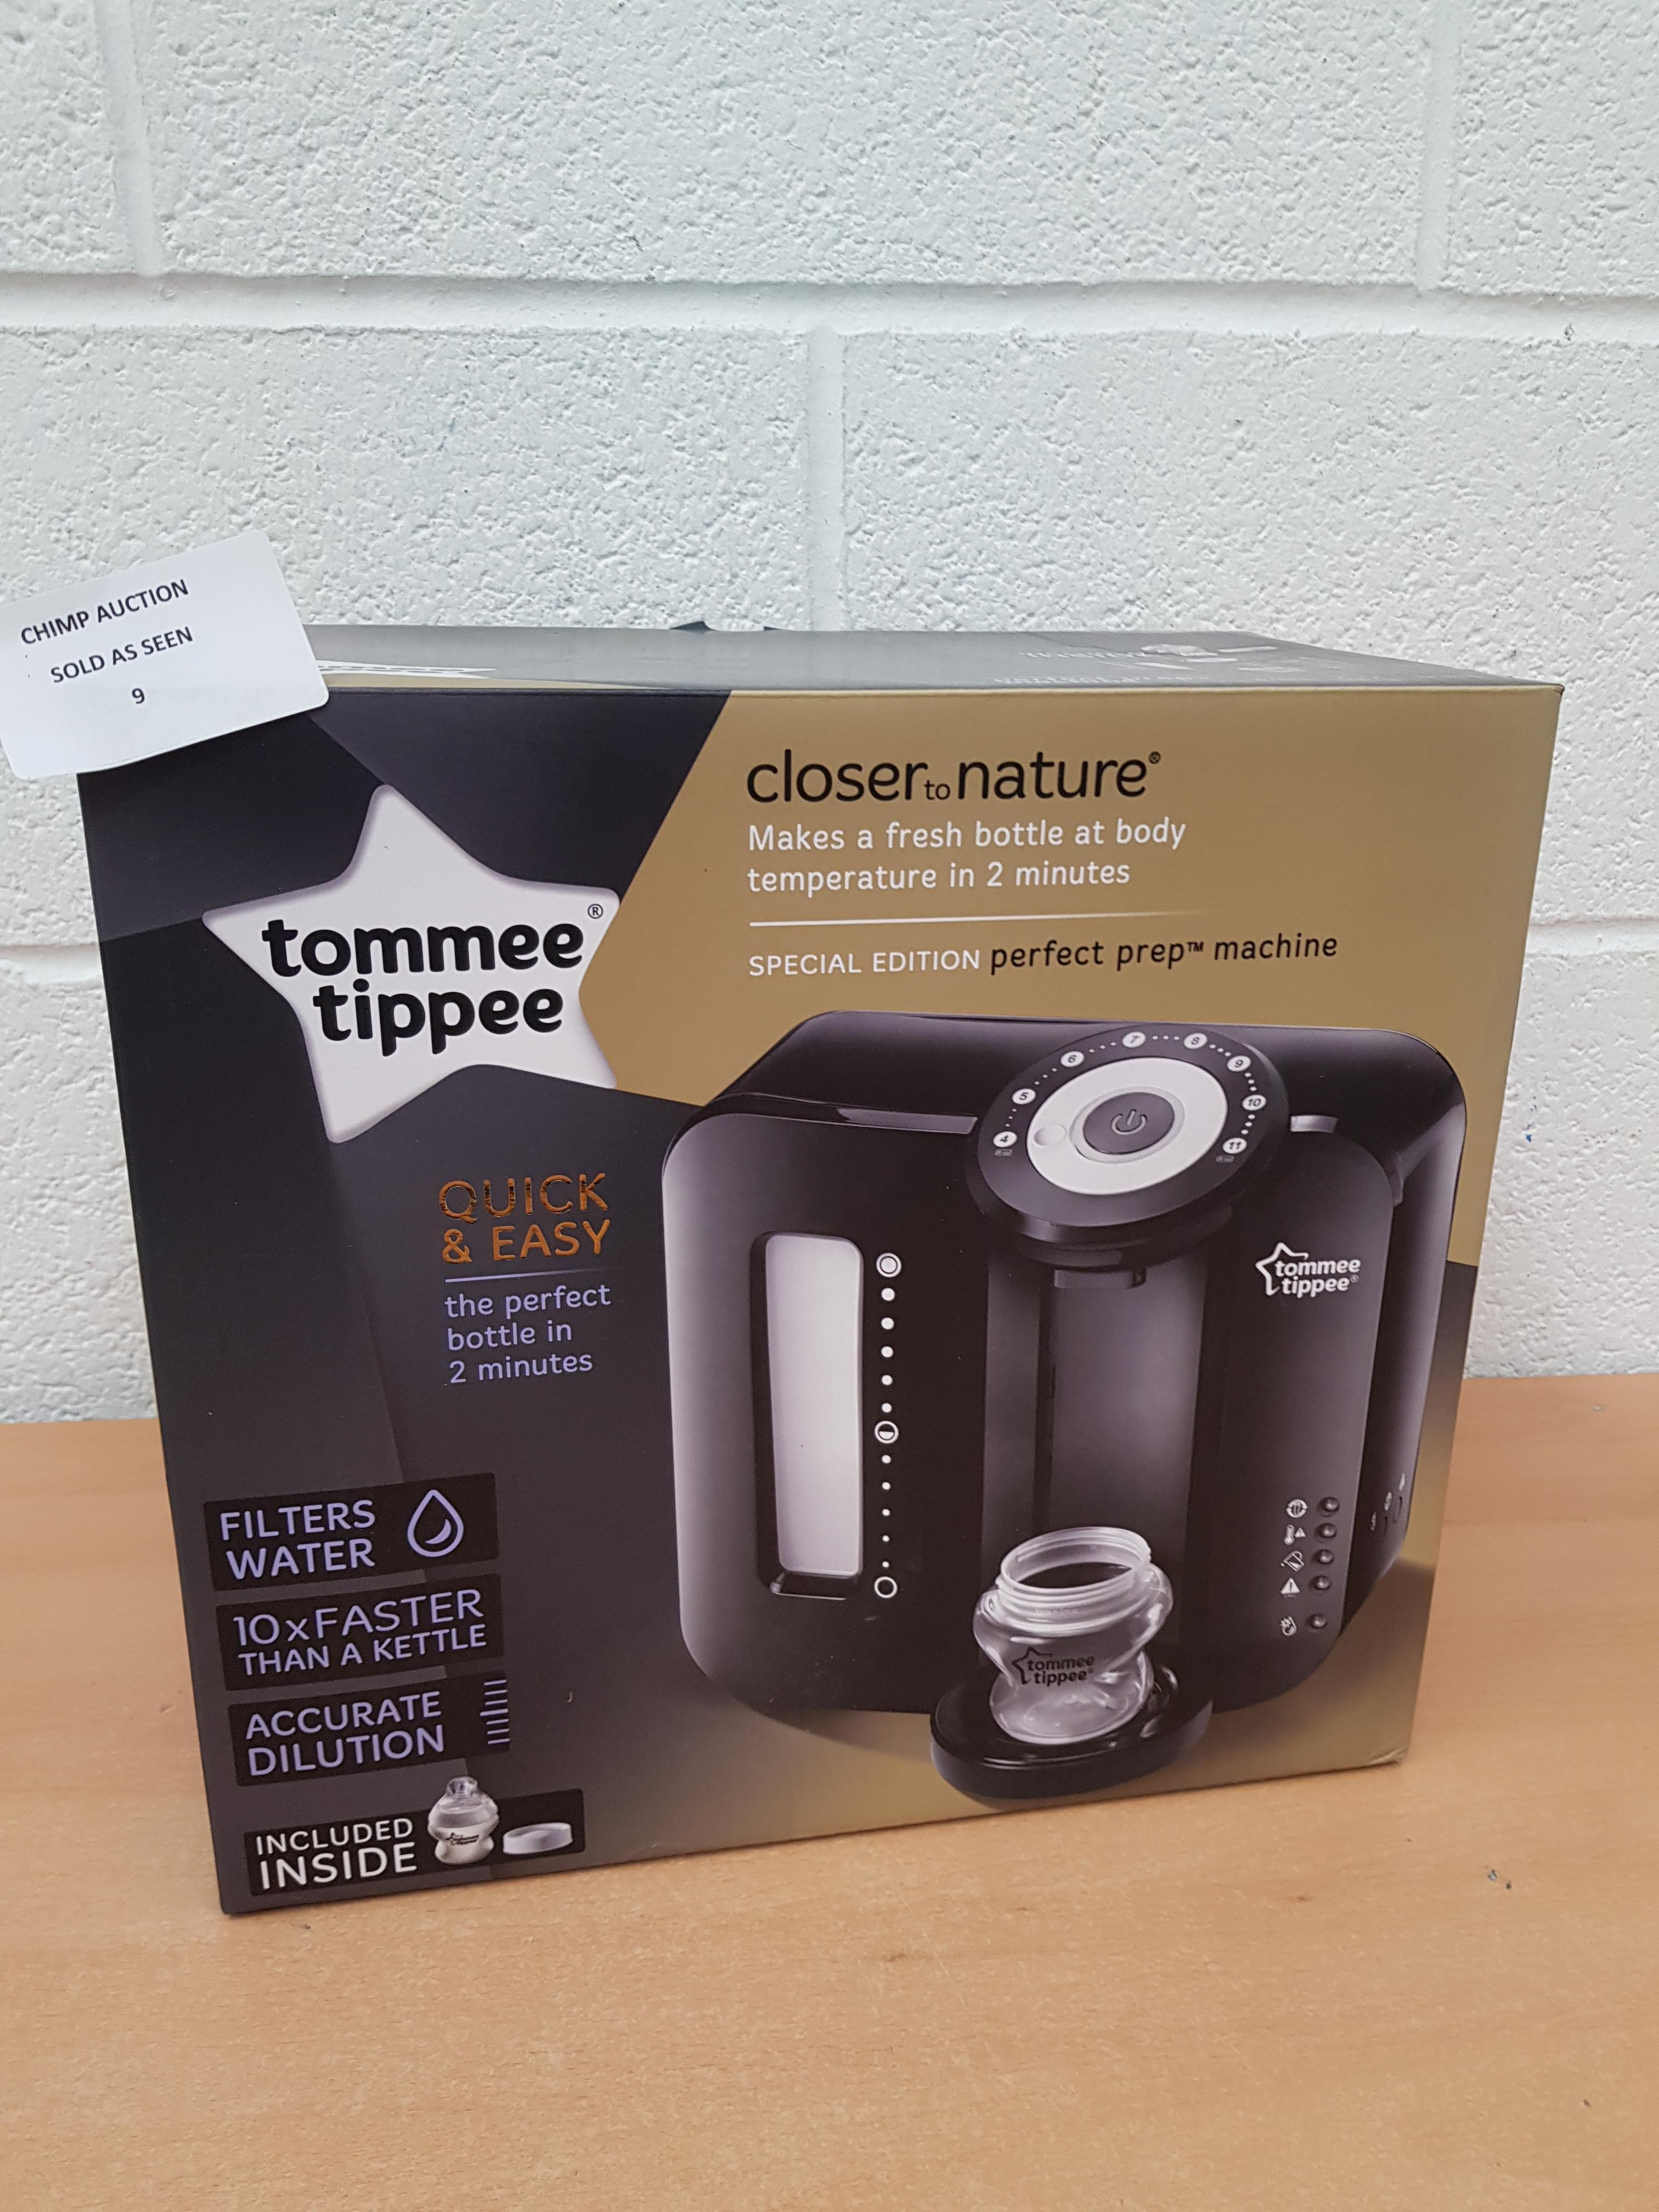 Lot 9 - Tommee Tippee Perfect Prep Machine Special edition RRP £129.99.